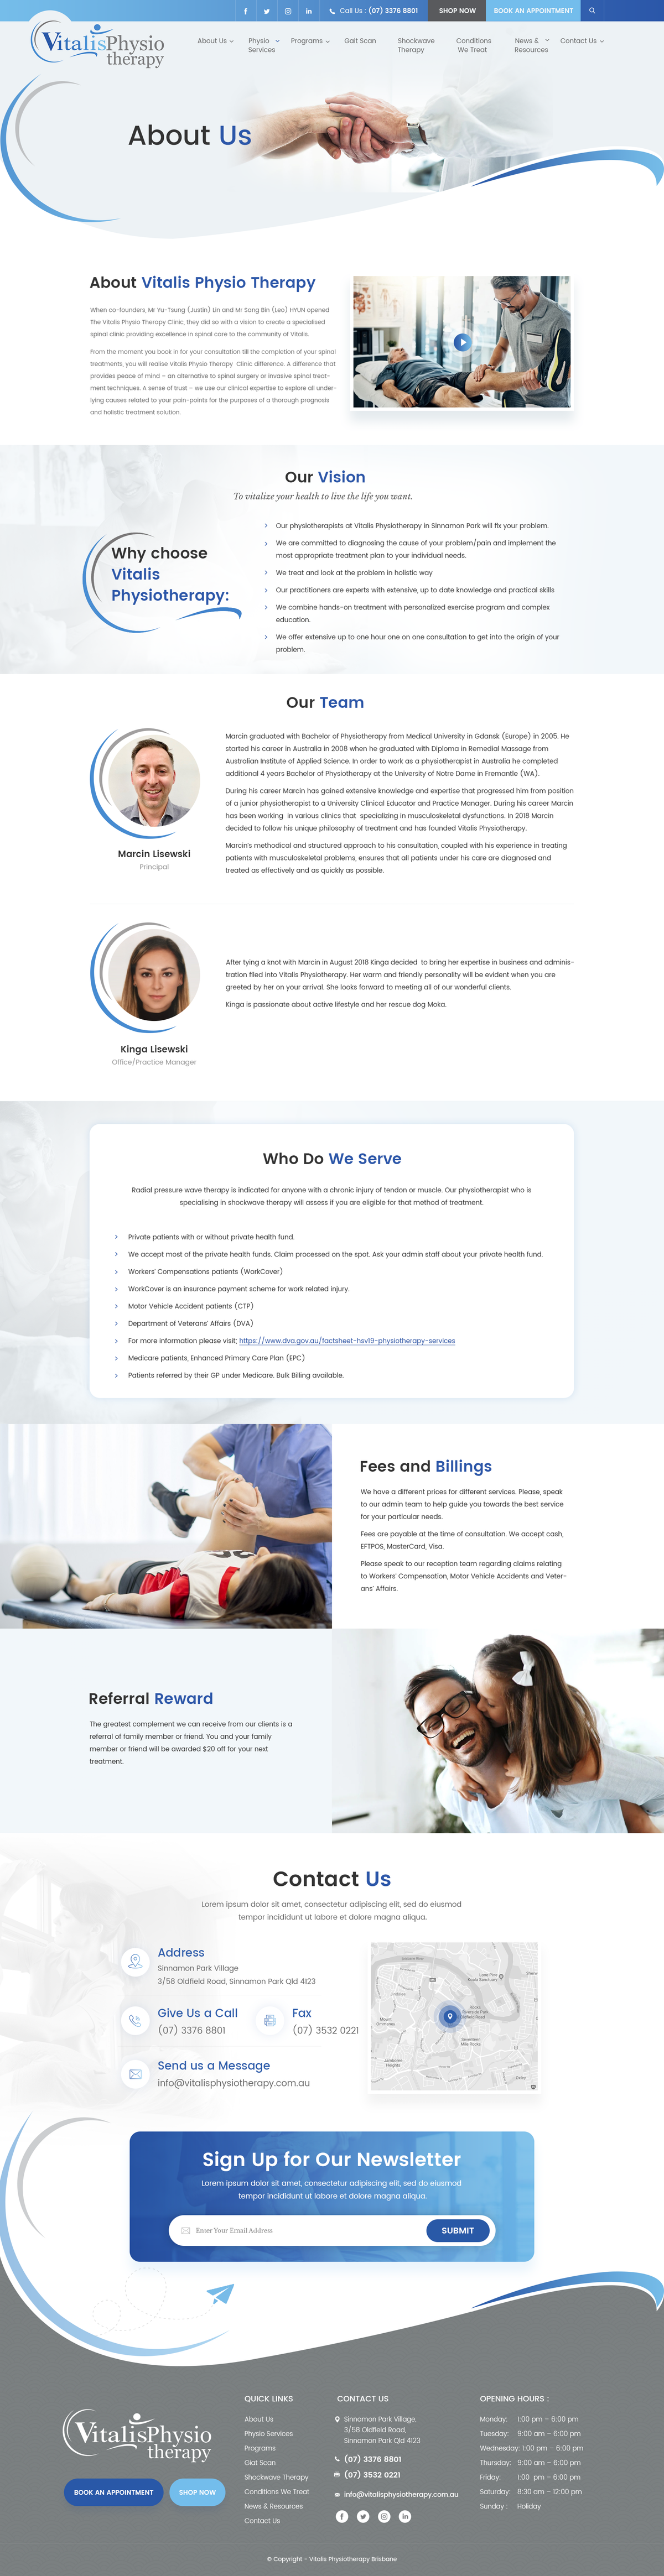 Vitalis Physio Therapy Inner pages